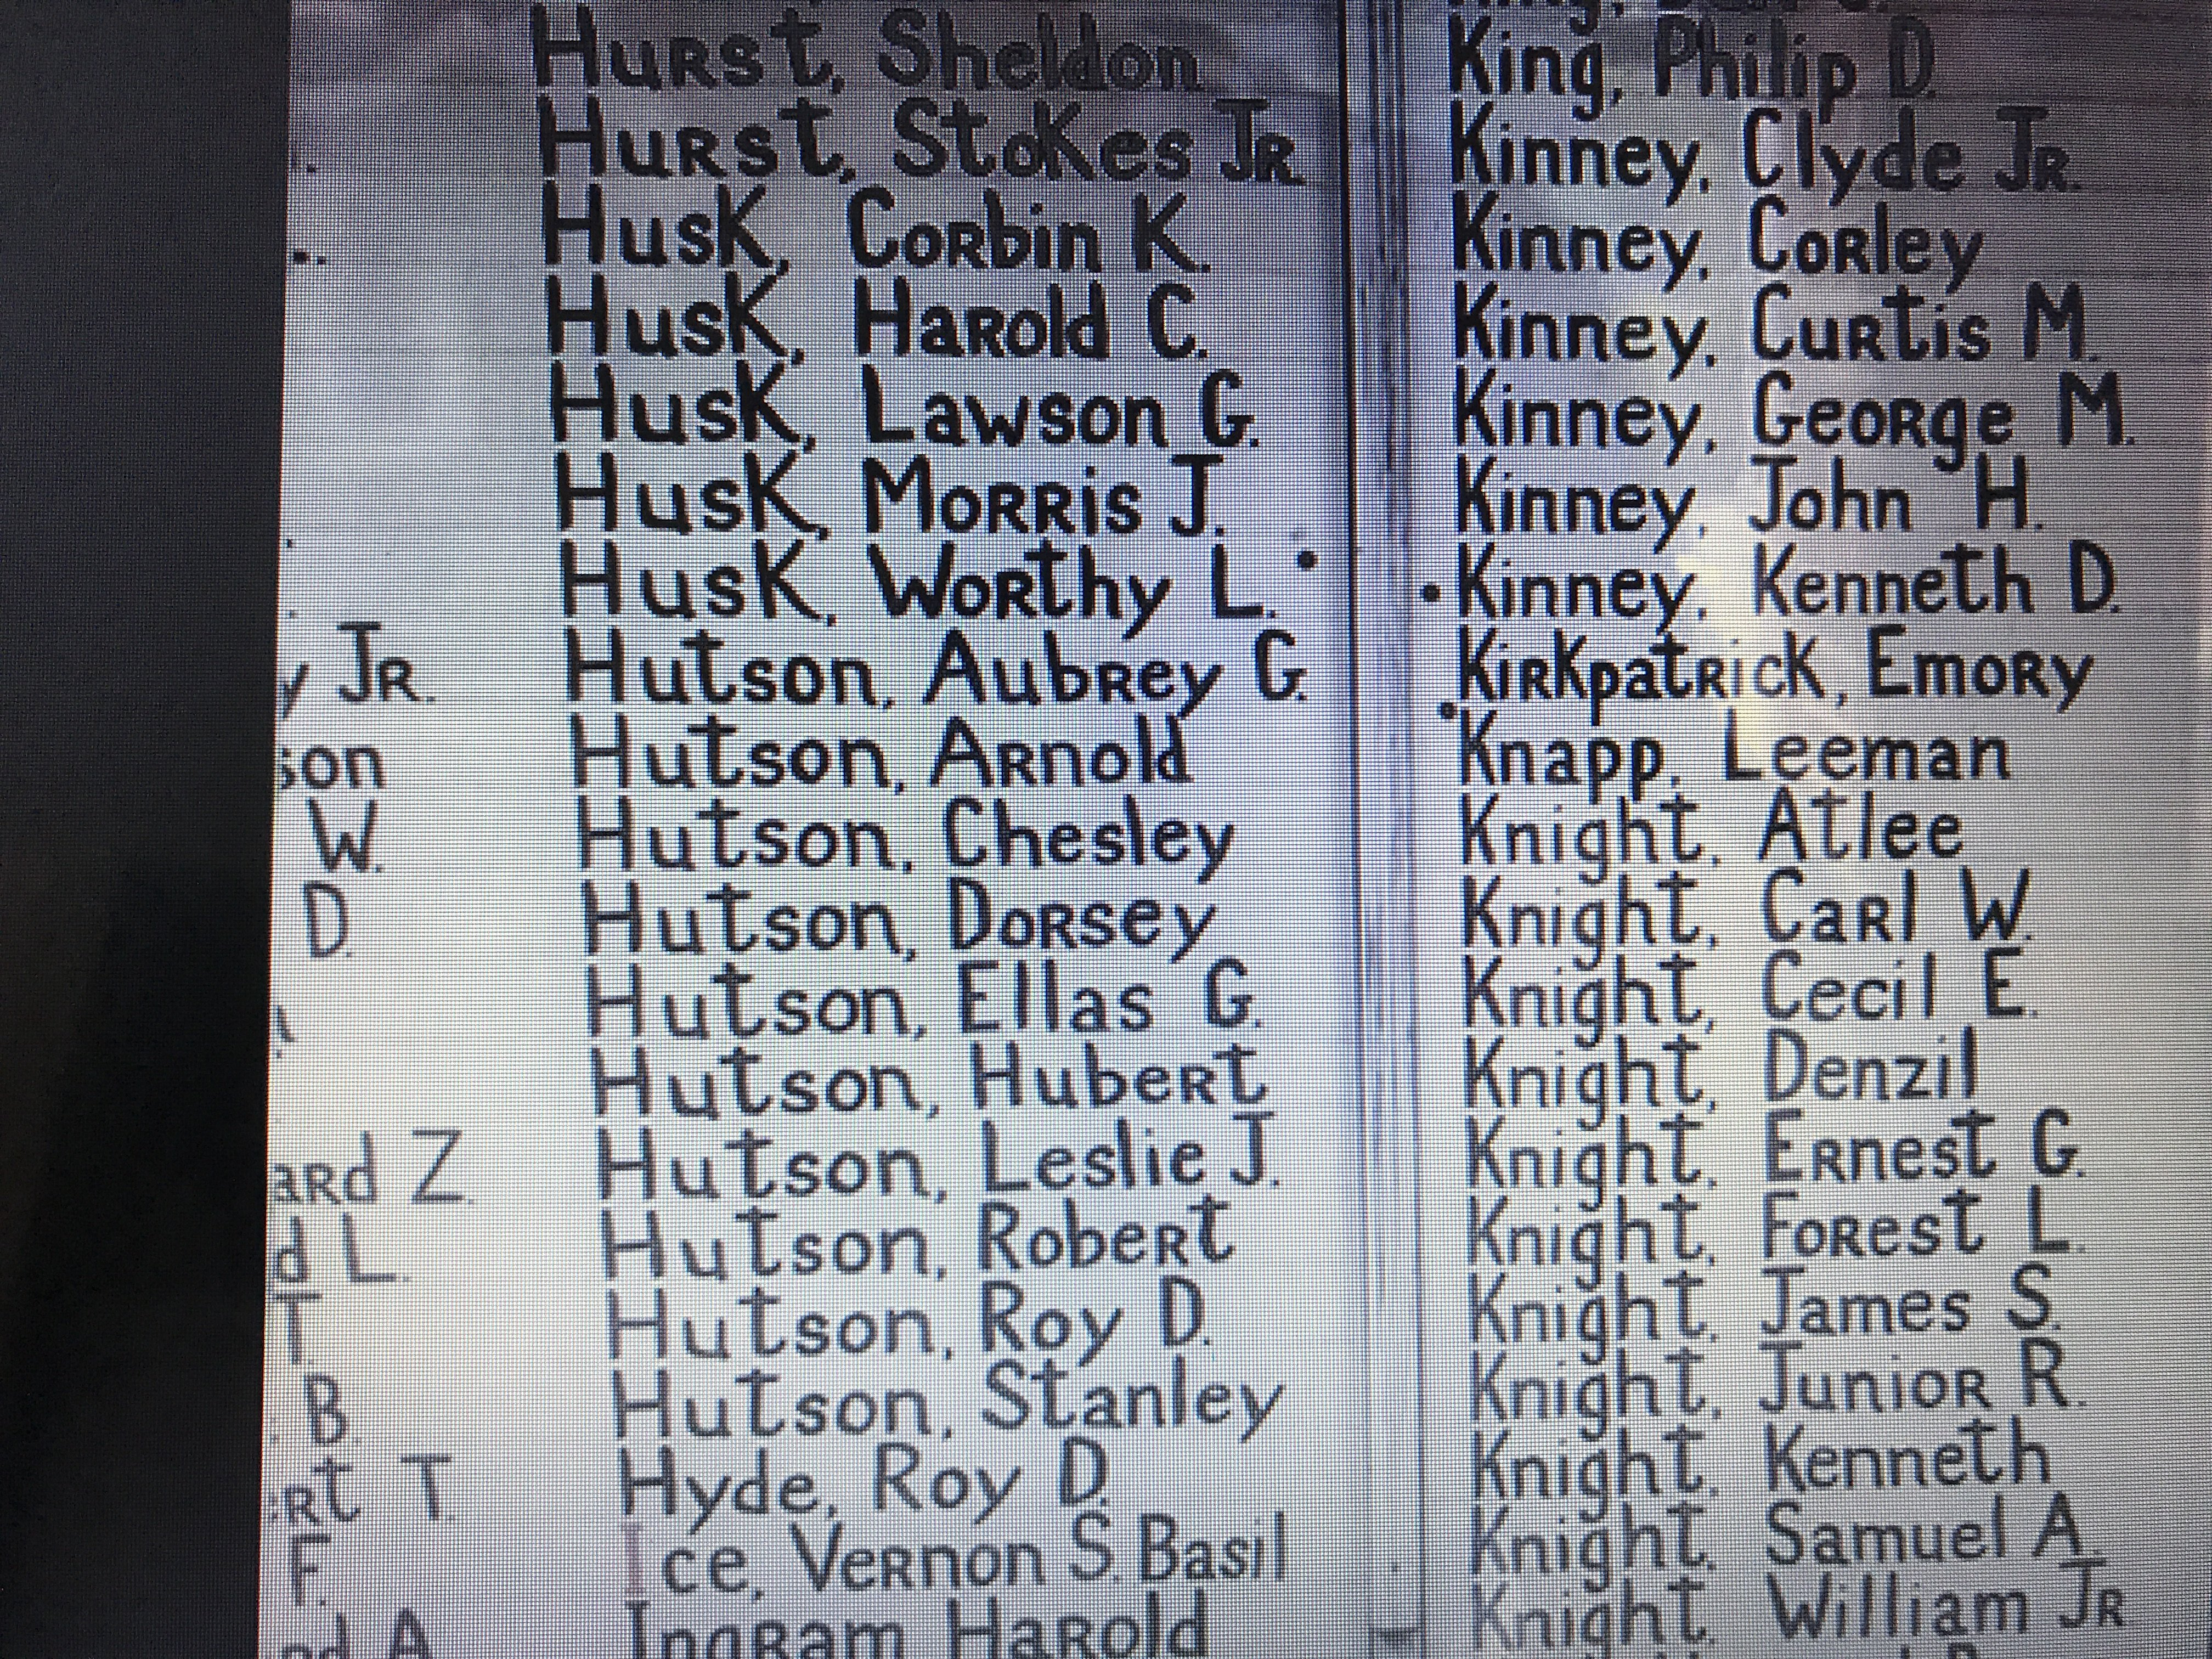 A few of the handwritten names on the Honor Wall